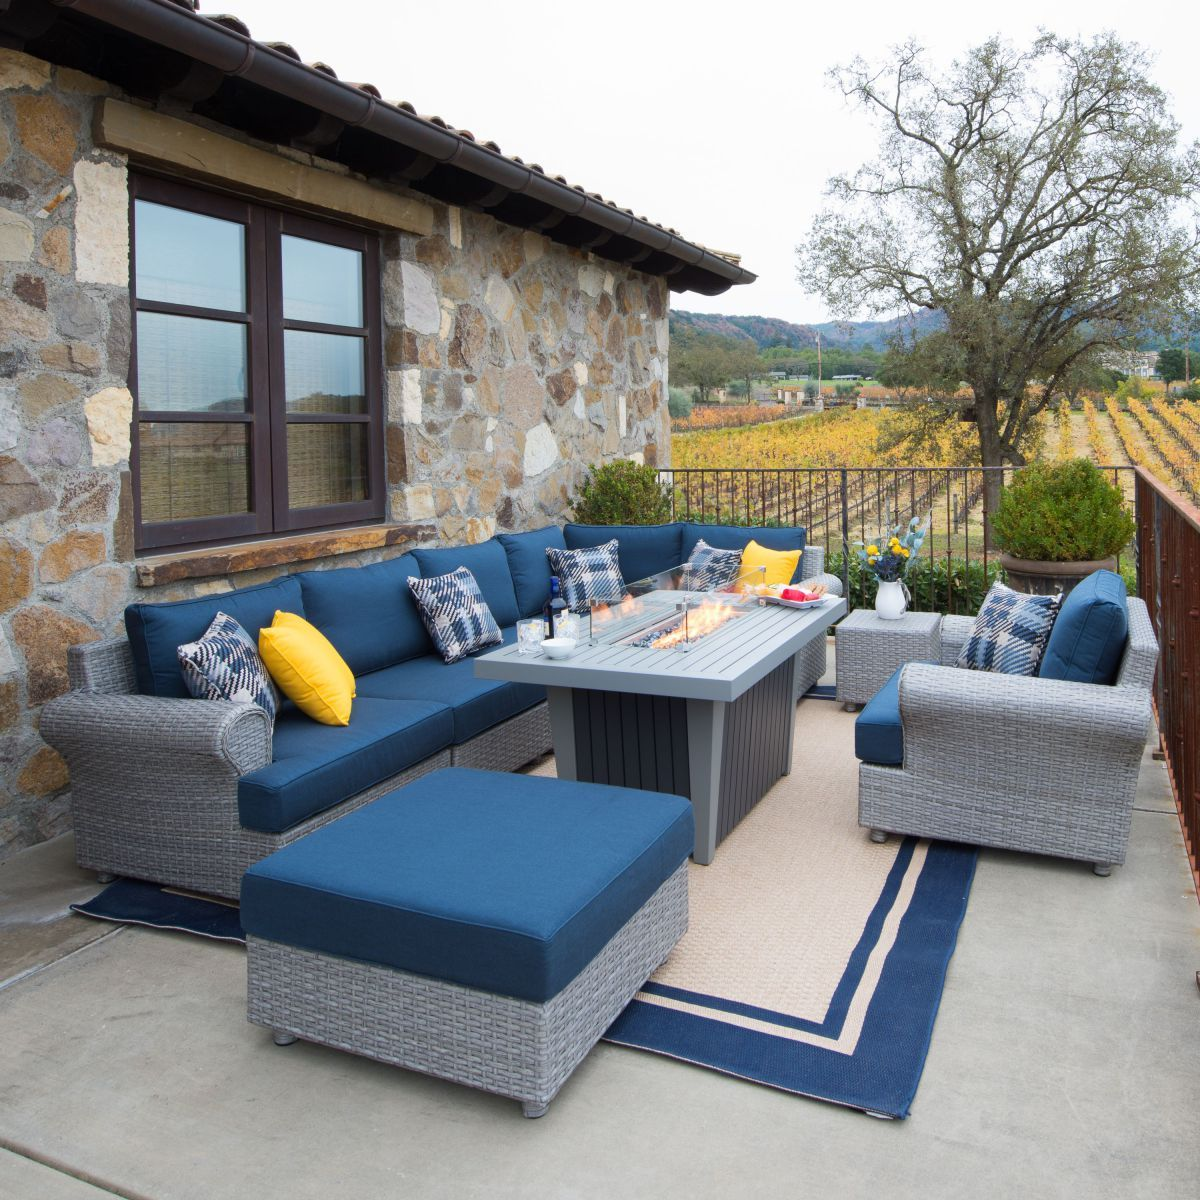 We've Found THE BEST Costco Patio Furniture Set (yes, The